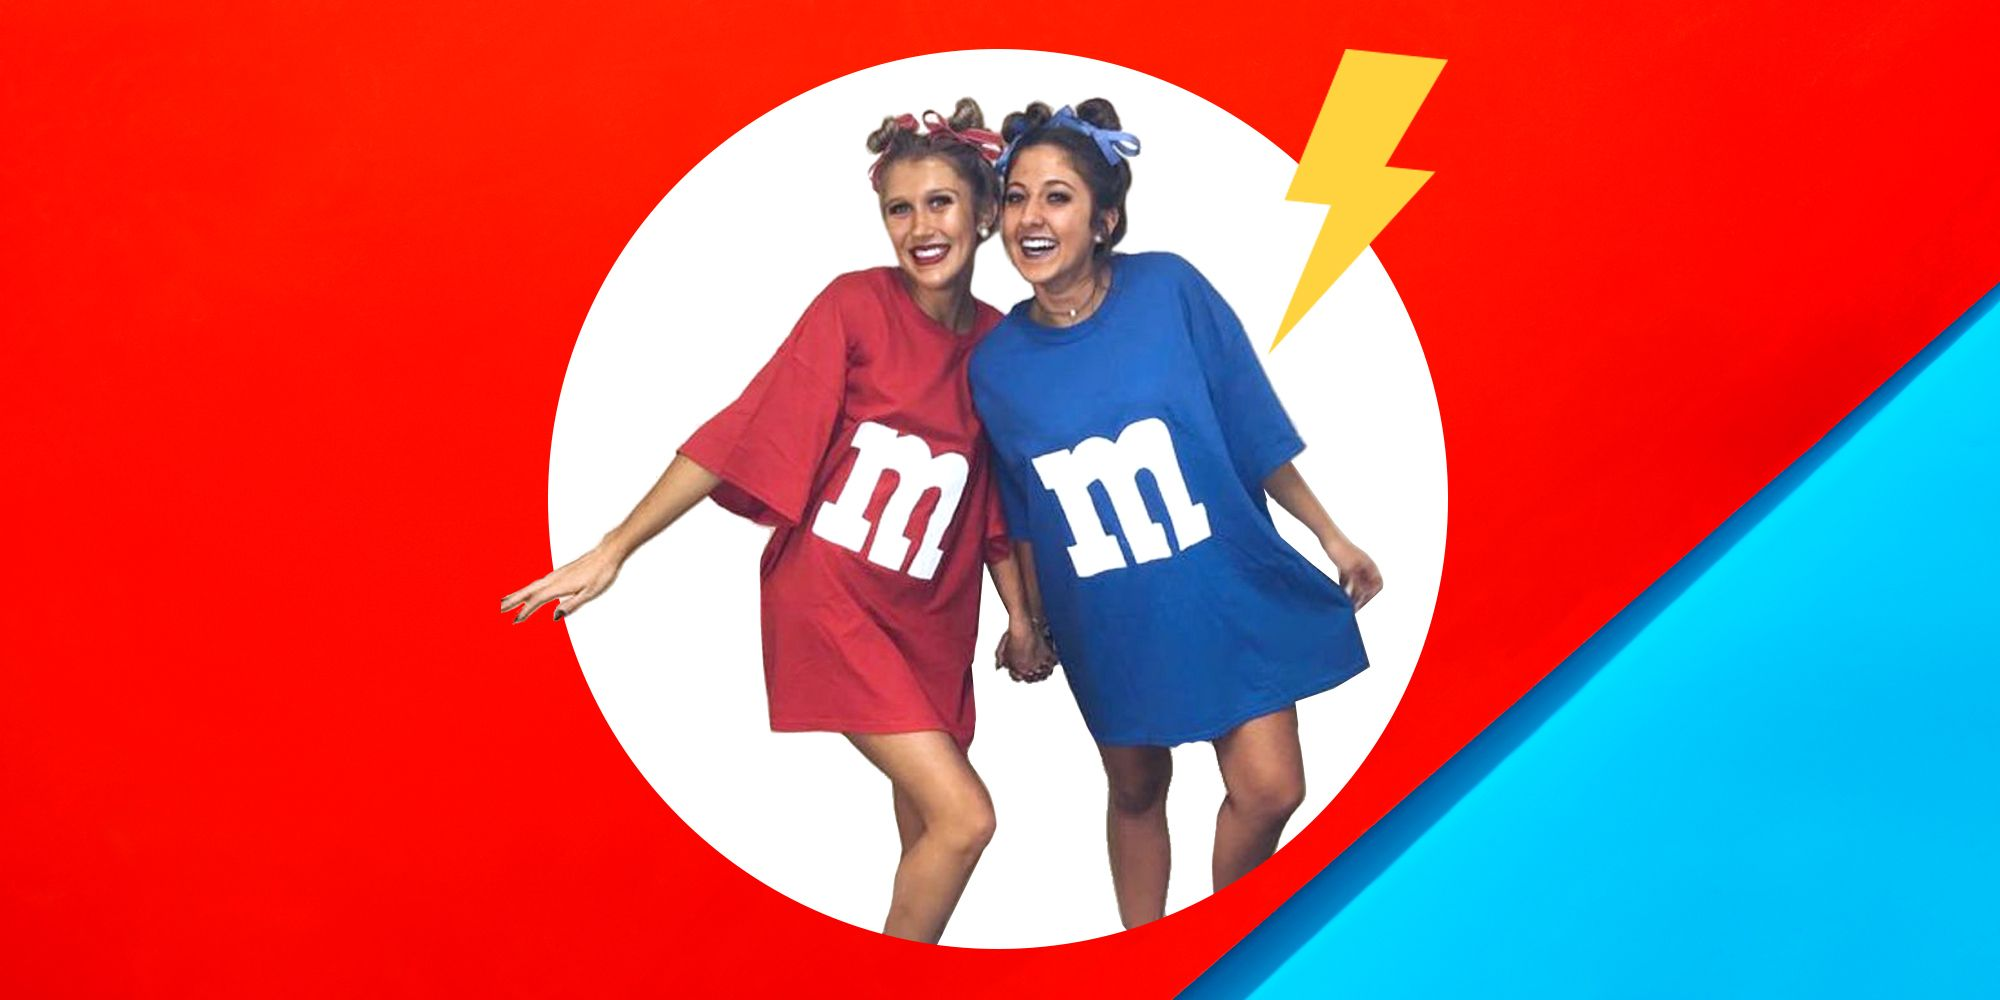 16 Best Friend Halloween Costume Ideas That Are Scary Good